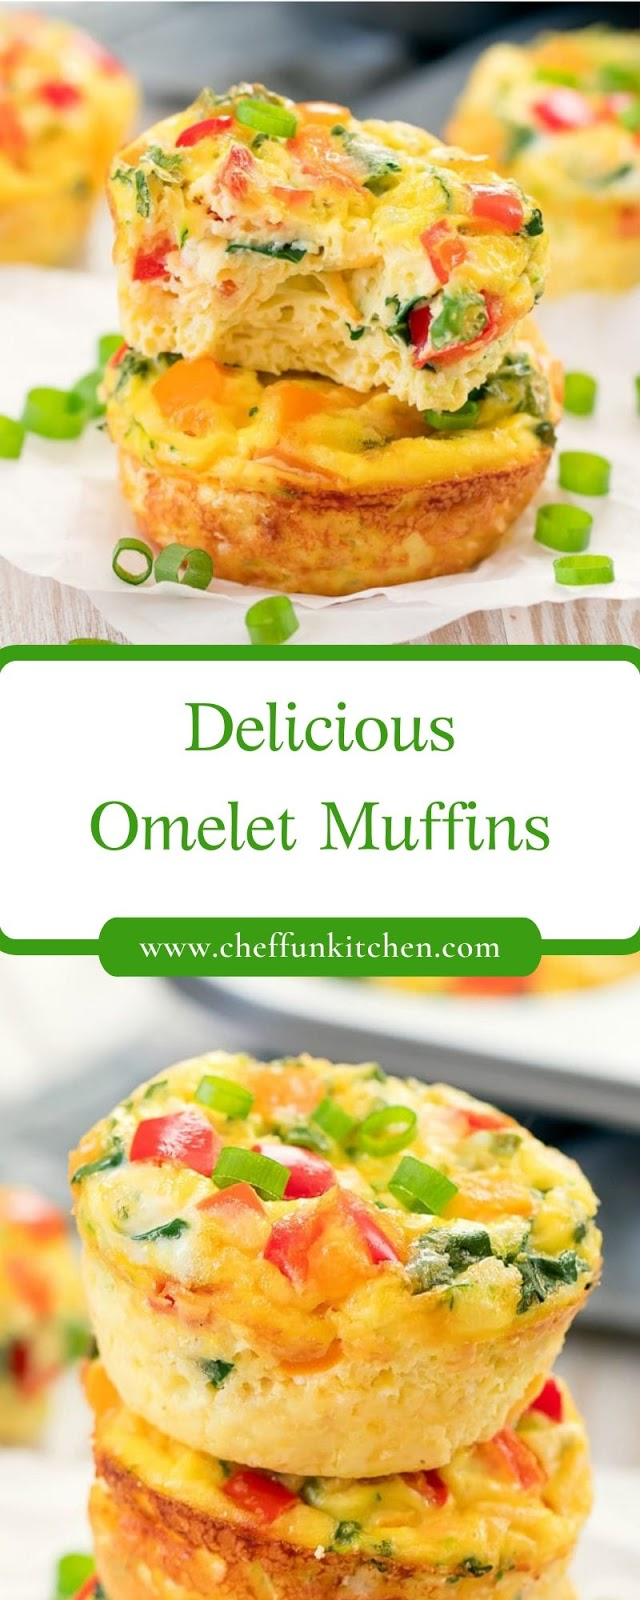 Delicious Omelet Muffins